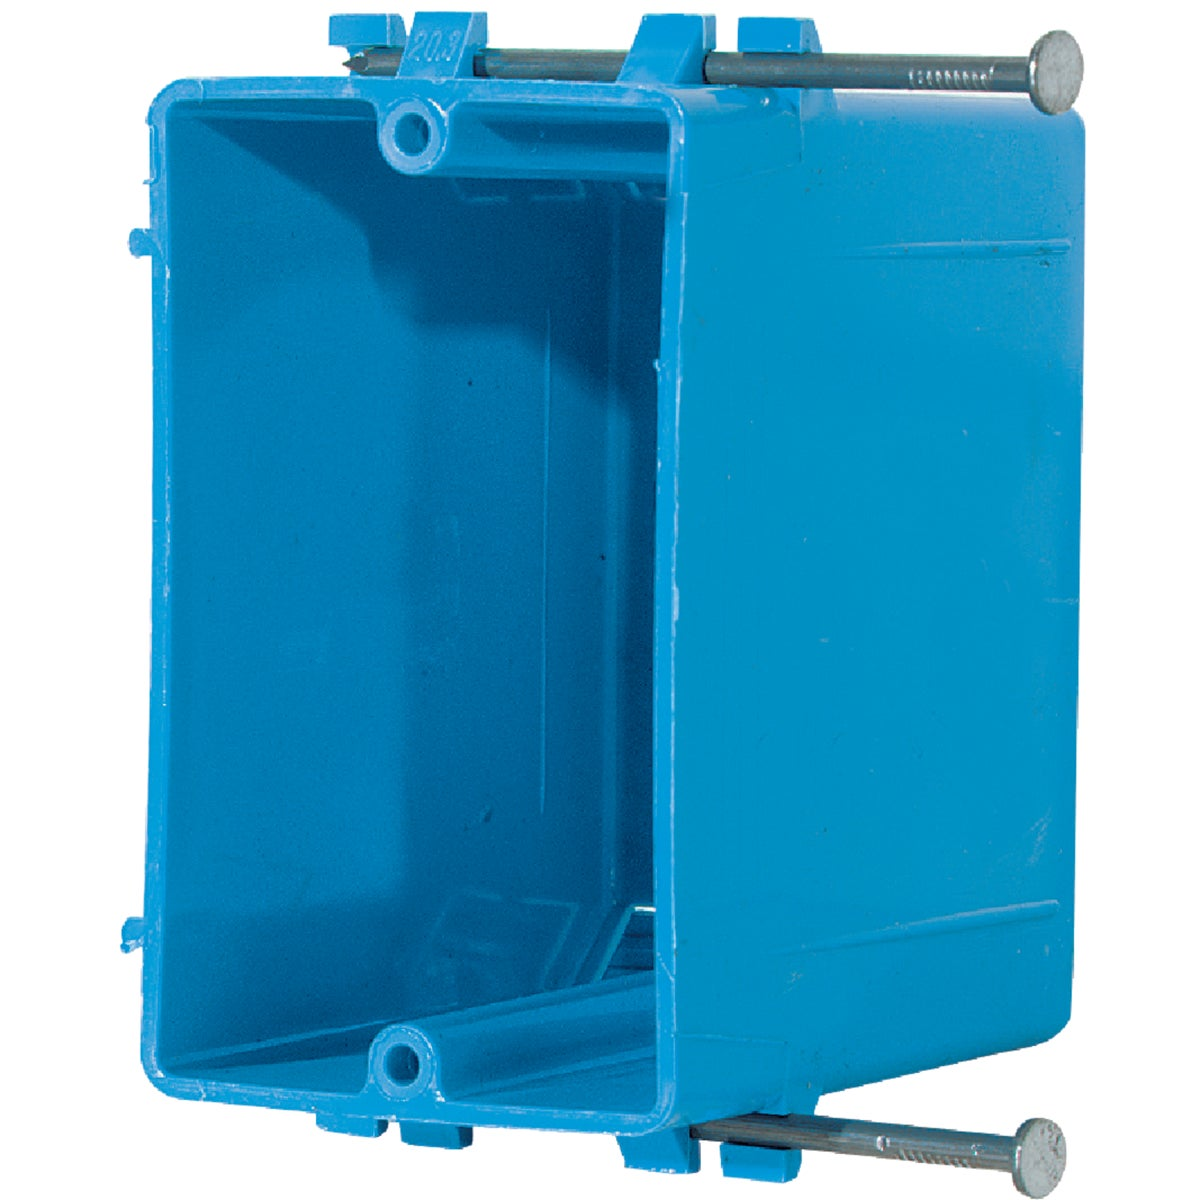 1 GANG SWITCH BOX - B120AUPC by Thomas & Betts